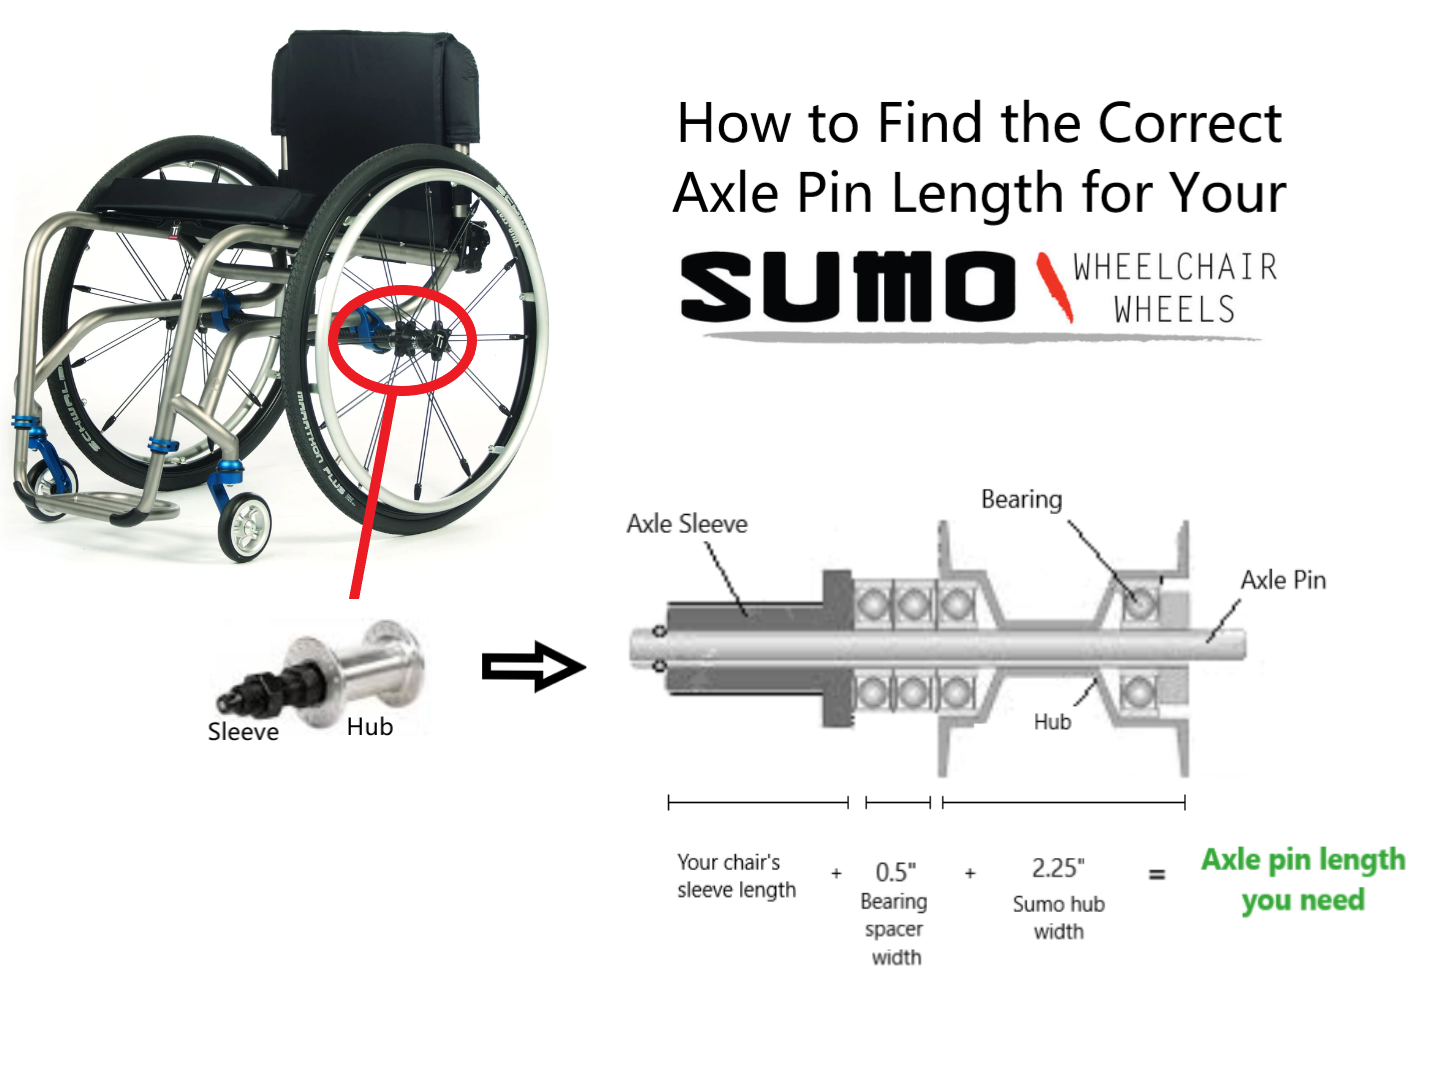 axle-pin-size-graphic-sumo-wheels1.png